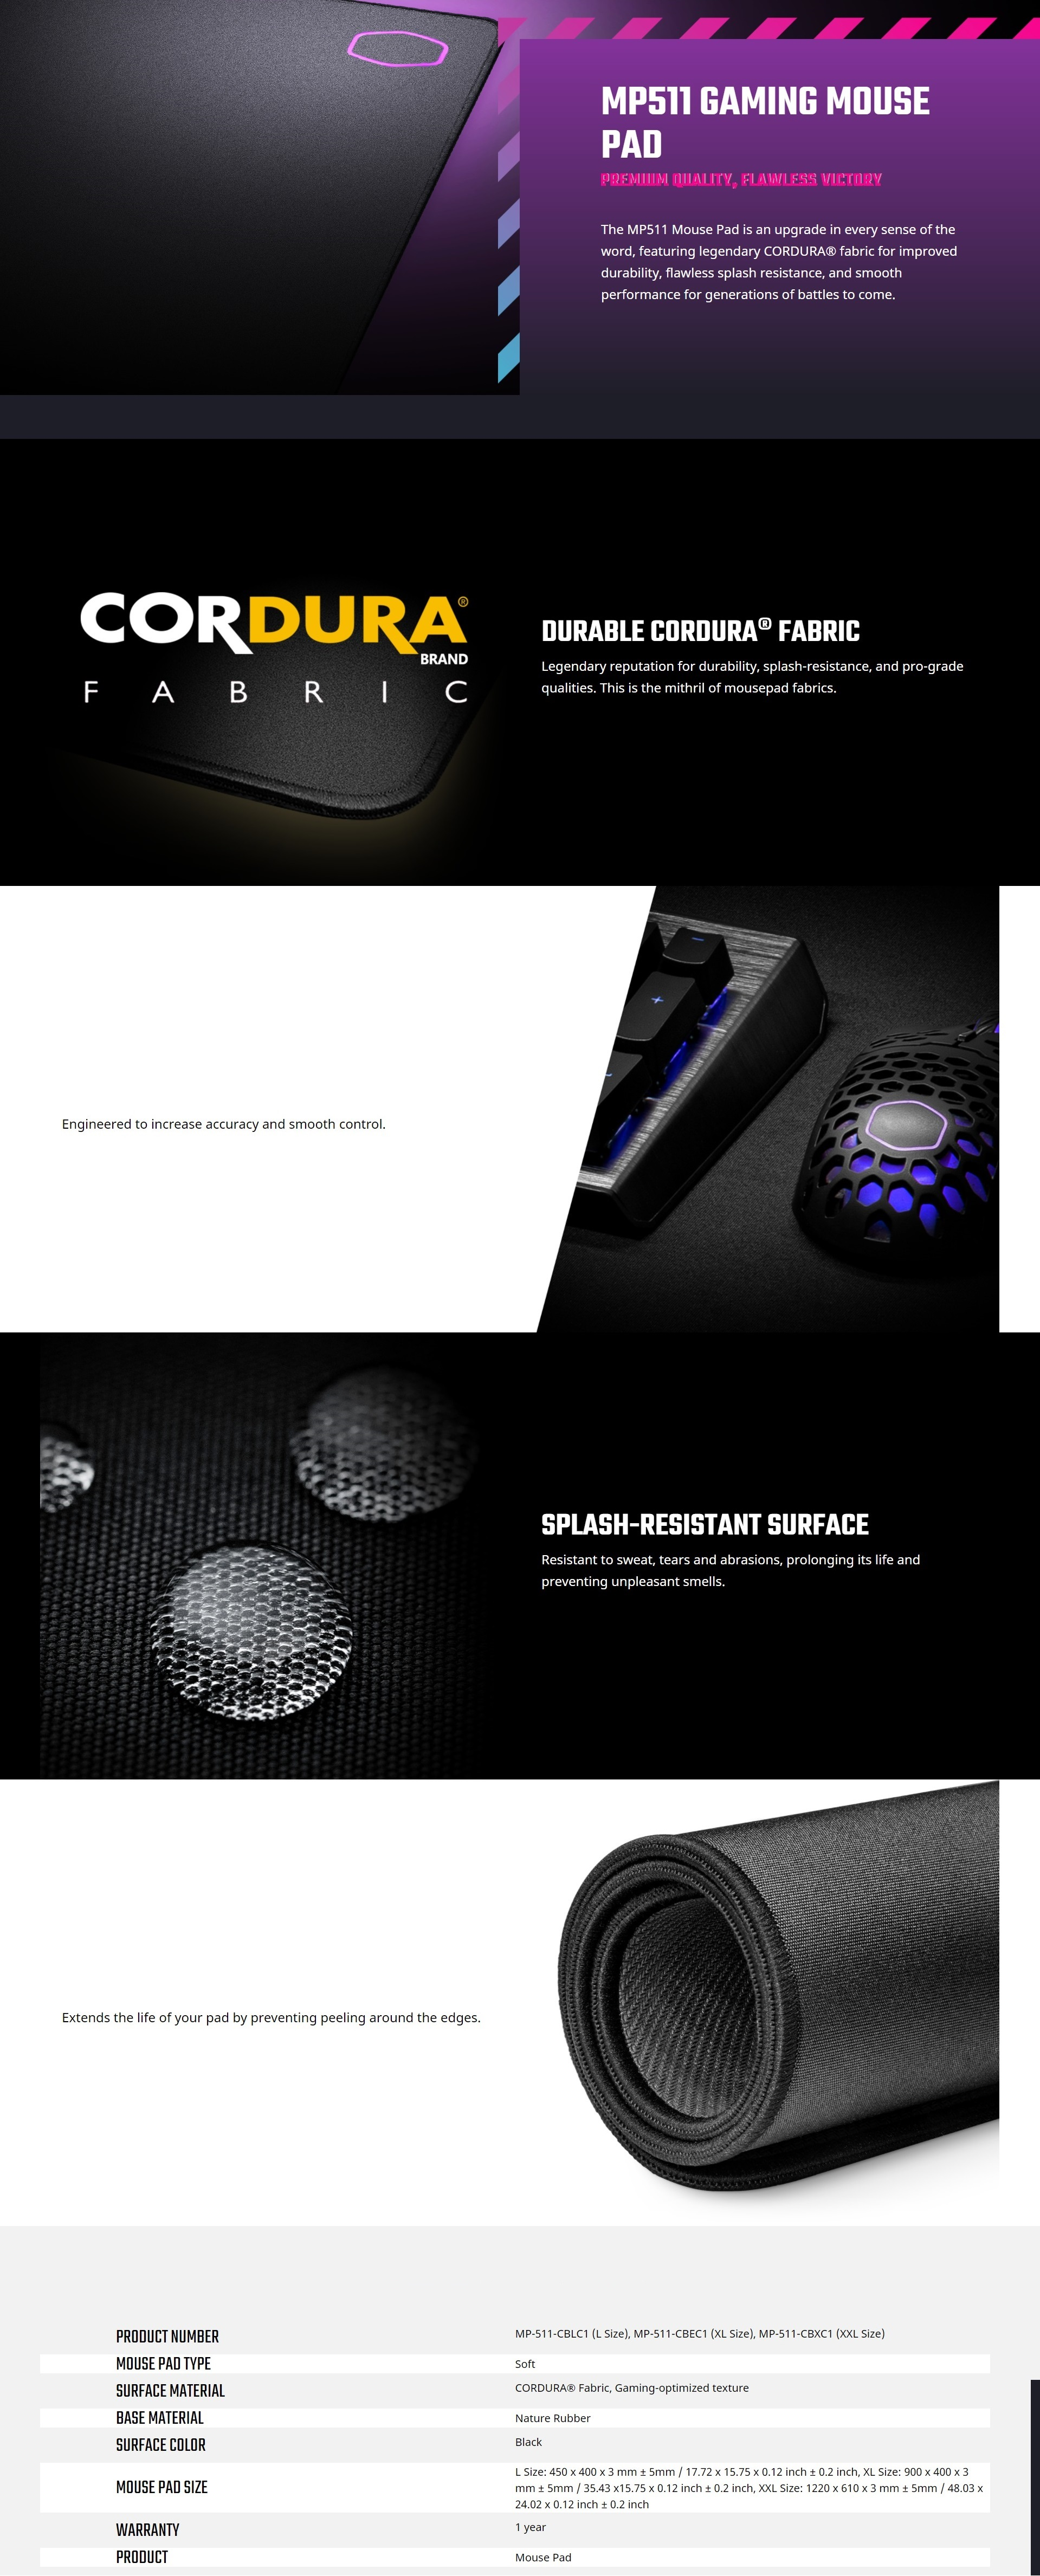 A large marketing image providing additional information about the product Cooler Master MasterAccessory MP511 Extended Large Mousemat - Additional alt info not provided